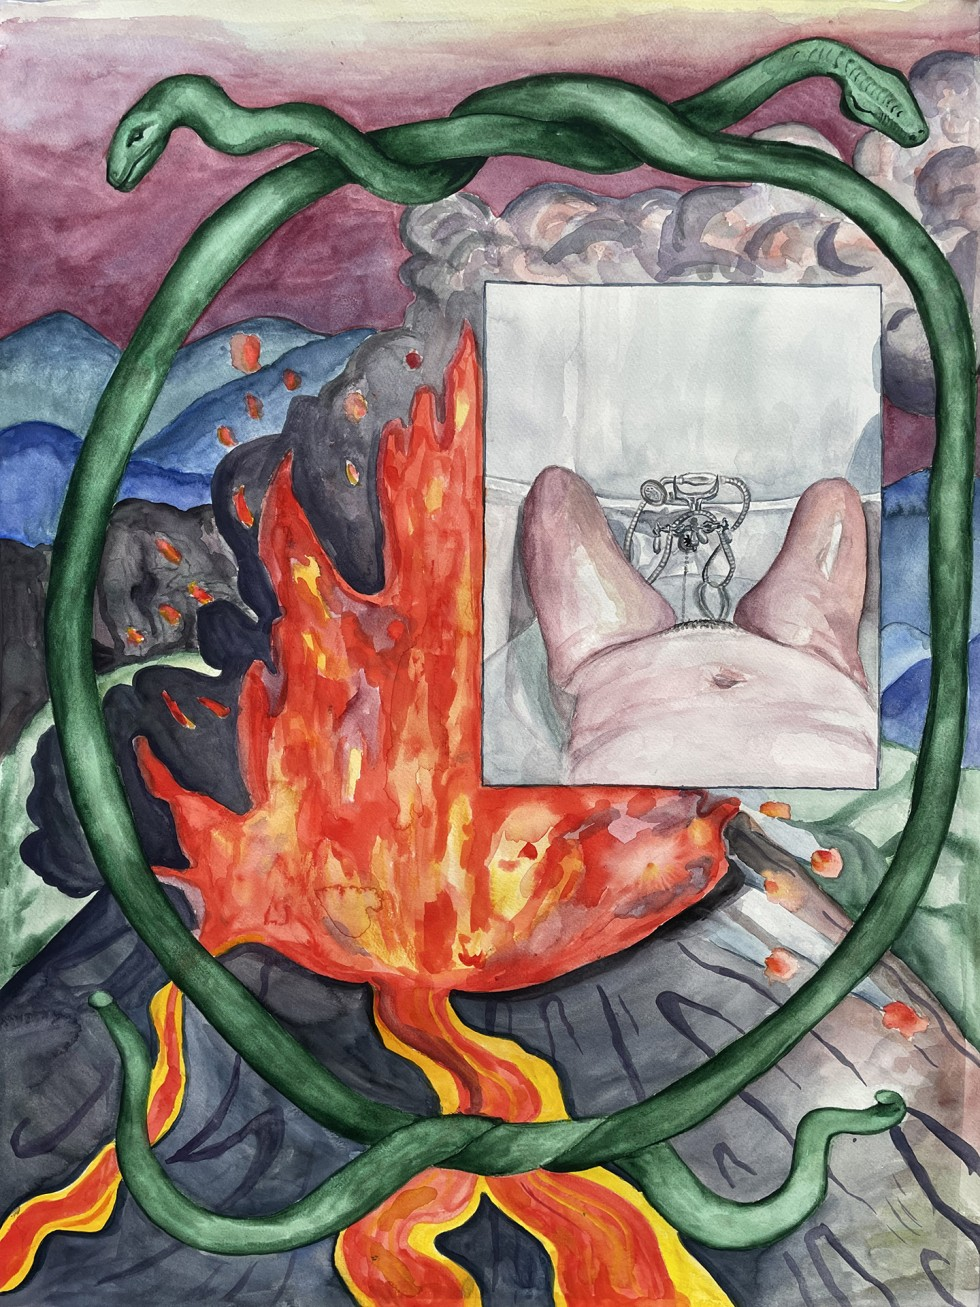 Volcano exploding in mountain scape, smaller inset rectangle of woman's lower half in bathtub, both are surrounded by intertwined snakes.